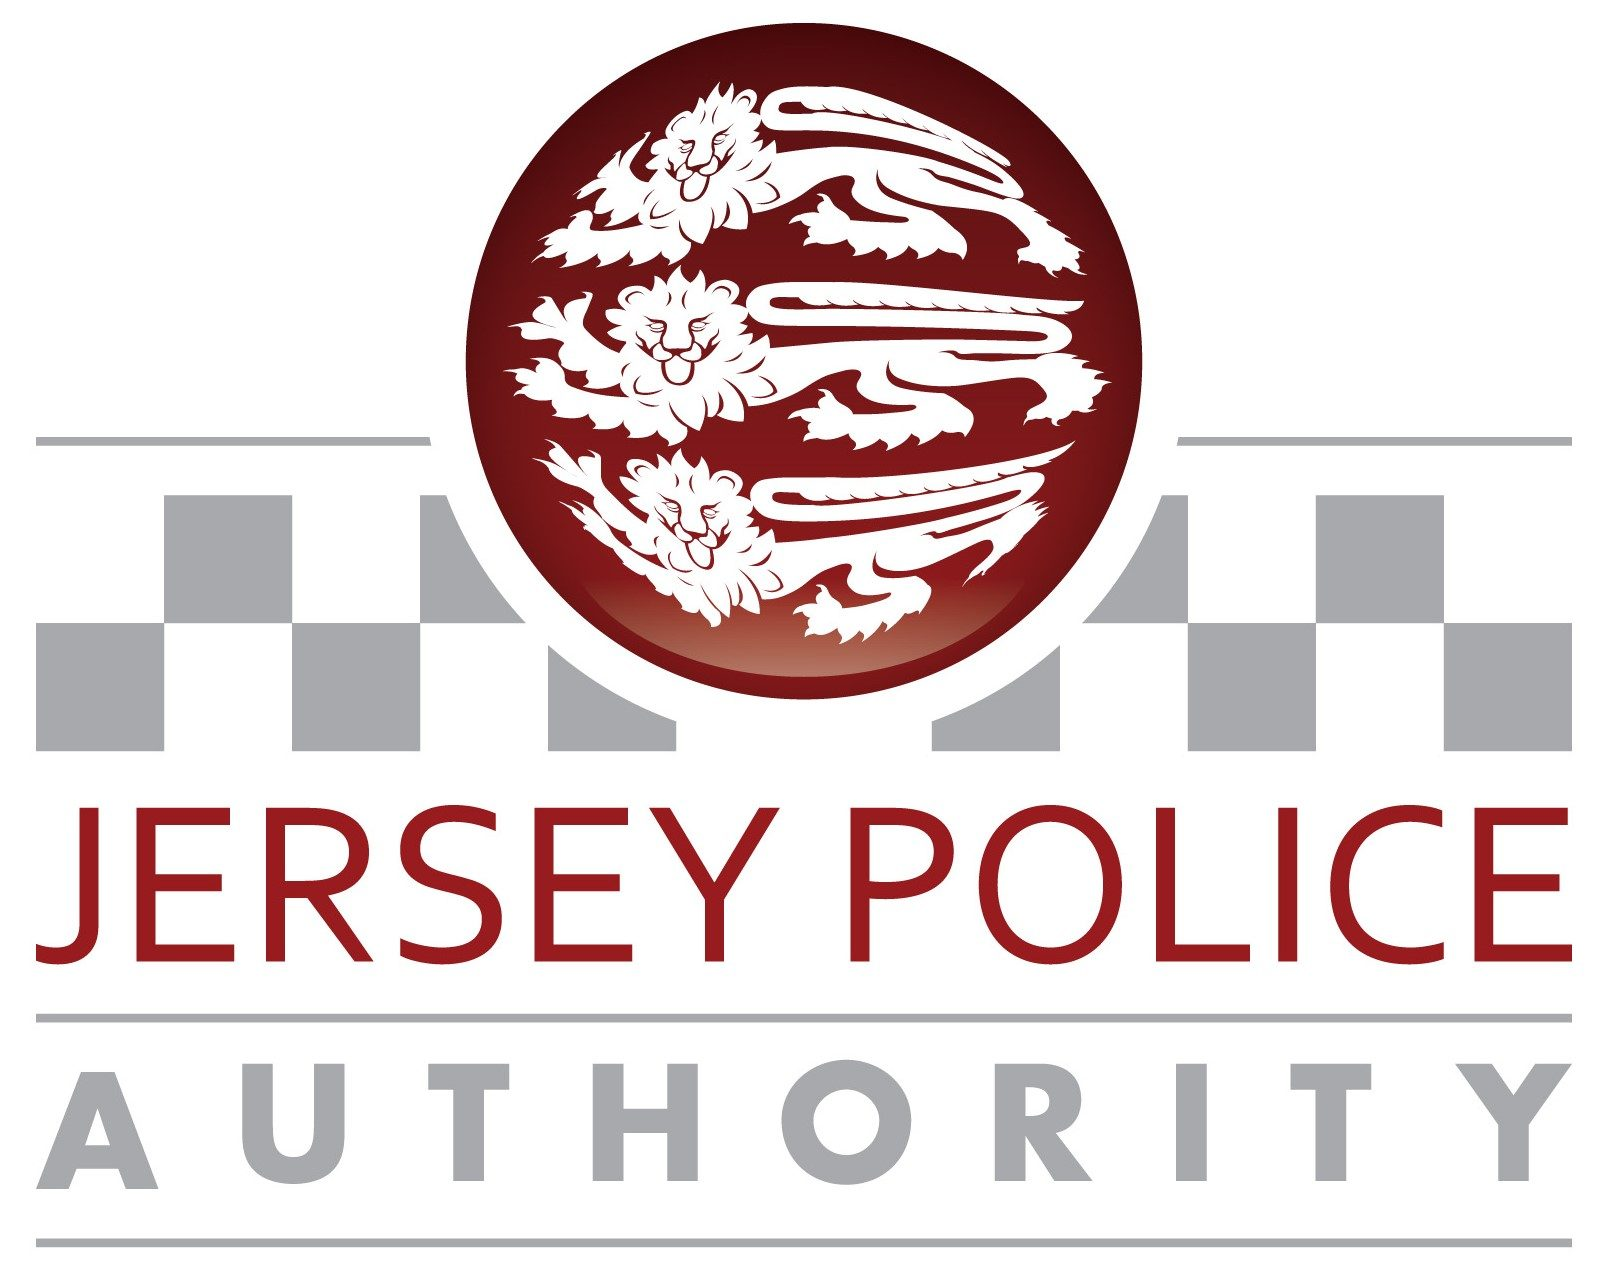 Welcome to the Jersey Police Authority